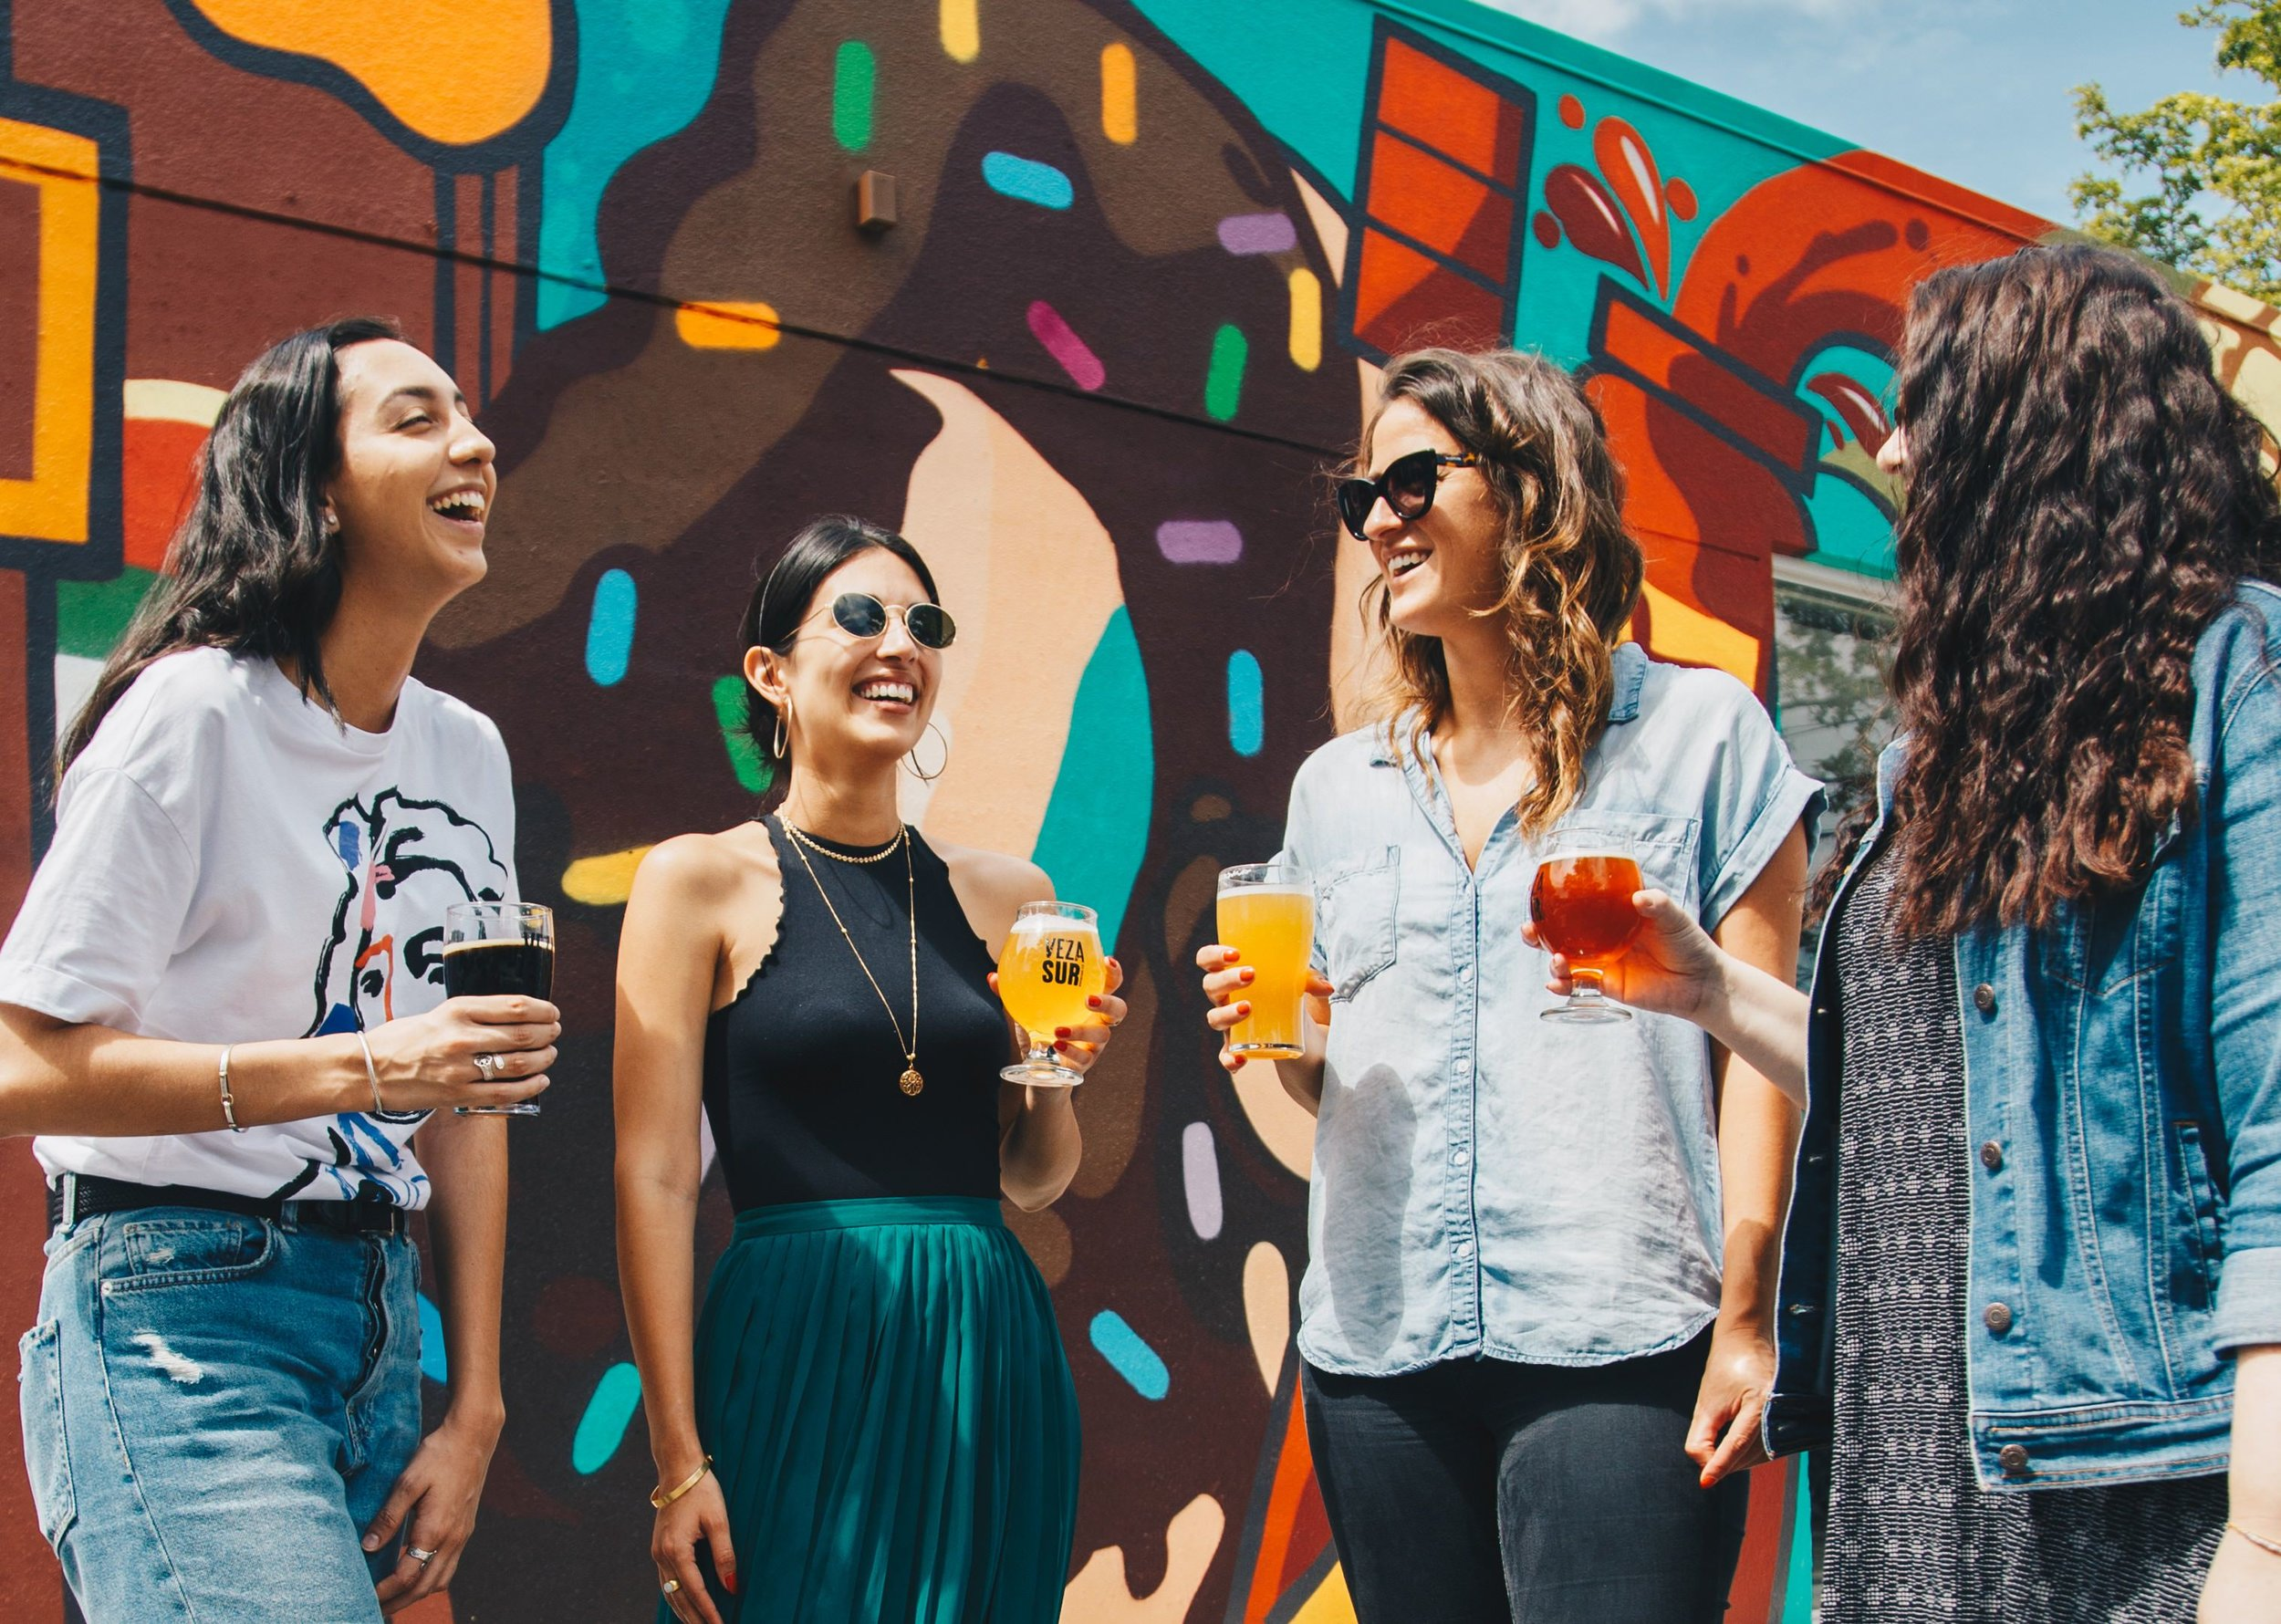 Young entrepreneurs smiling while drinking beer outside by a mural.